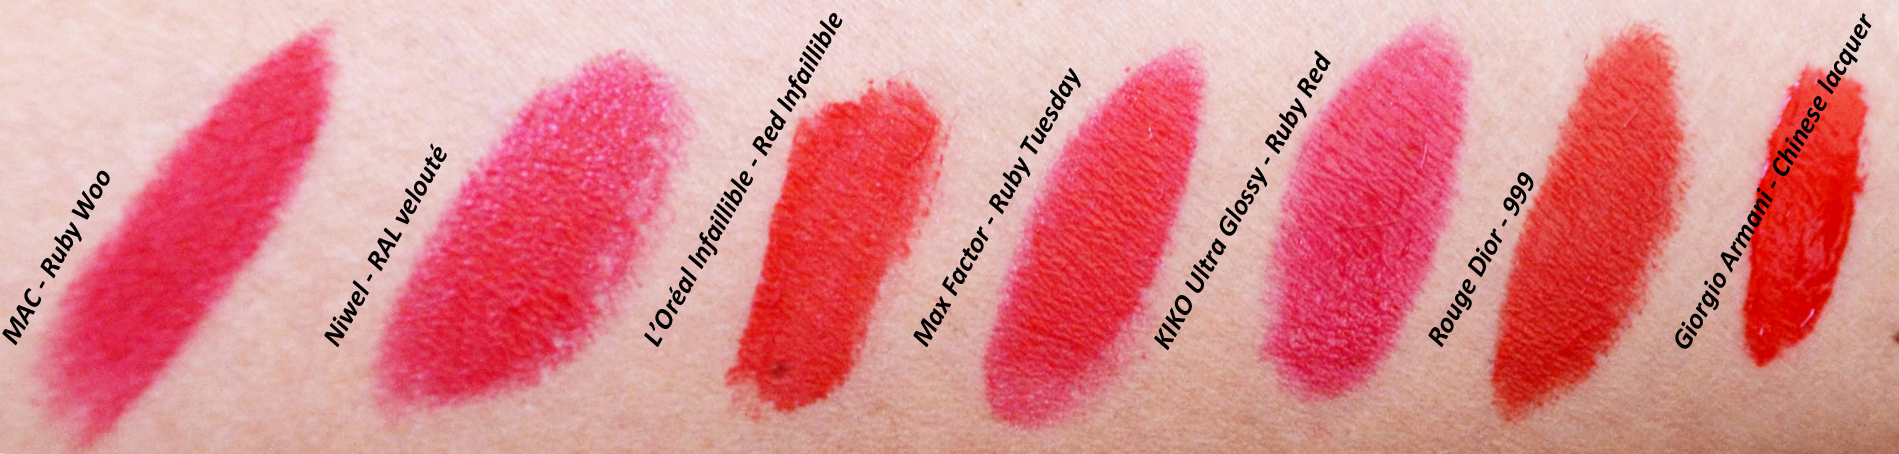 mercredie-blog-mode-geneve-beaute-maquillage-rouges-a-levres-rouge-lipstick-iconique-mac-ruby-niwel-giorgio-armani-l-oreal-dior-swatch-swatches-test2